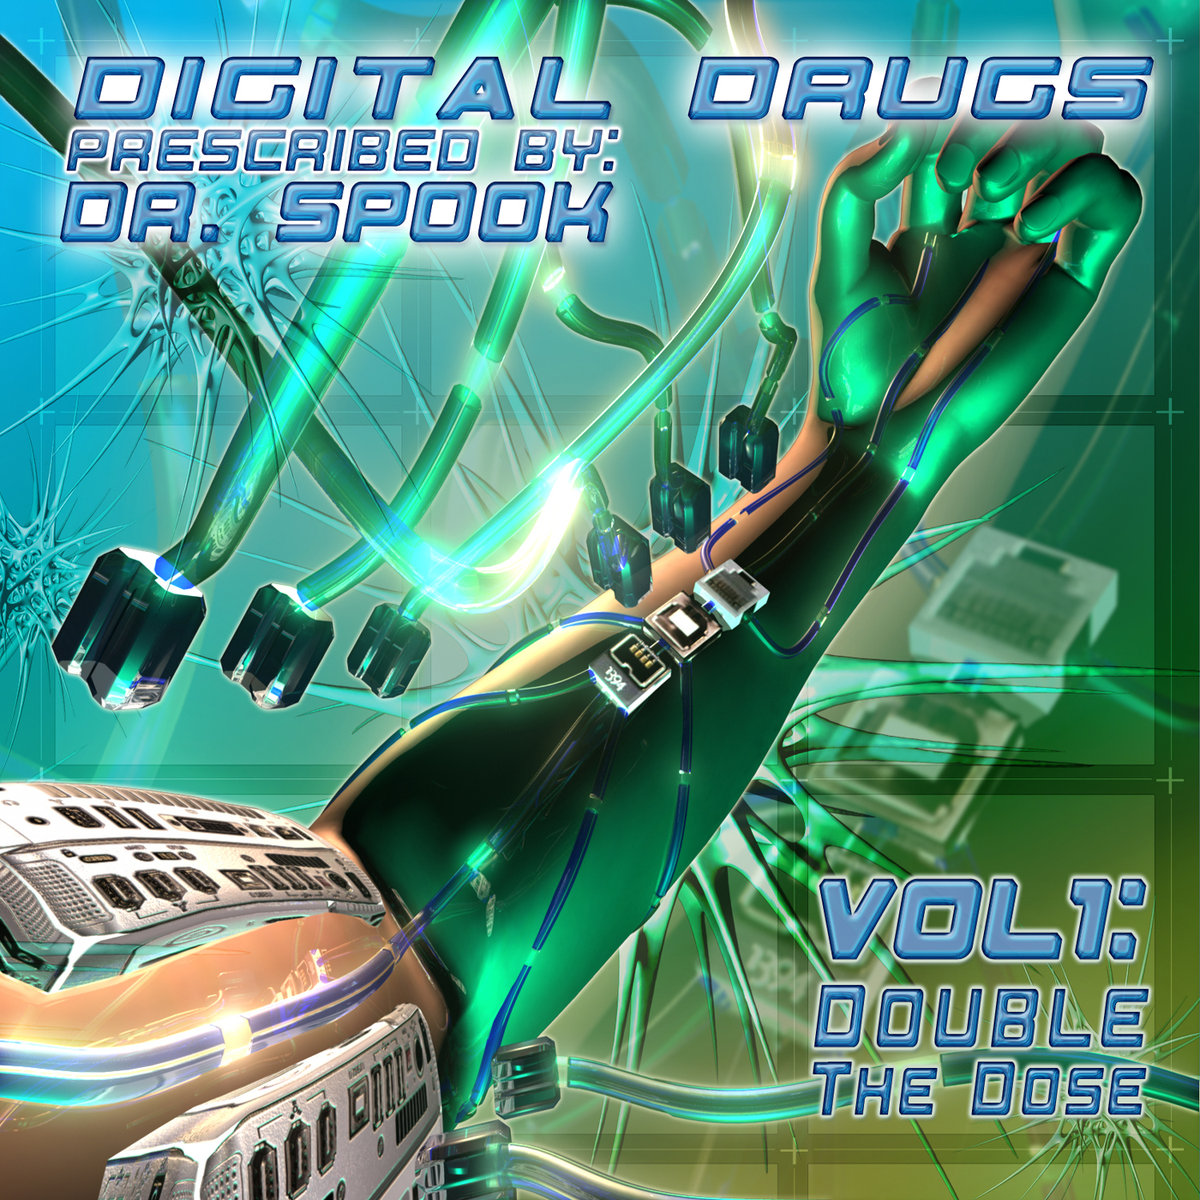 Shapestatic - Headroom @ 'Various Artists - Digital Drugs Vol.1: Double the Dose (Prescribed by Dr. Spook)' album (electronic, goa)